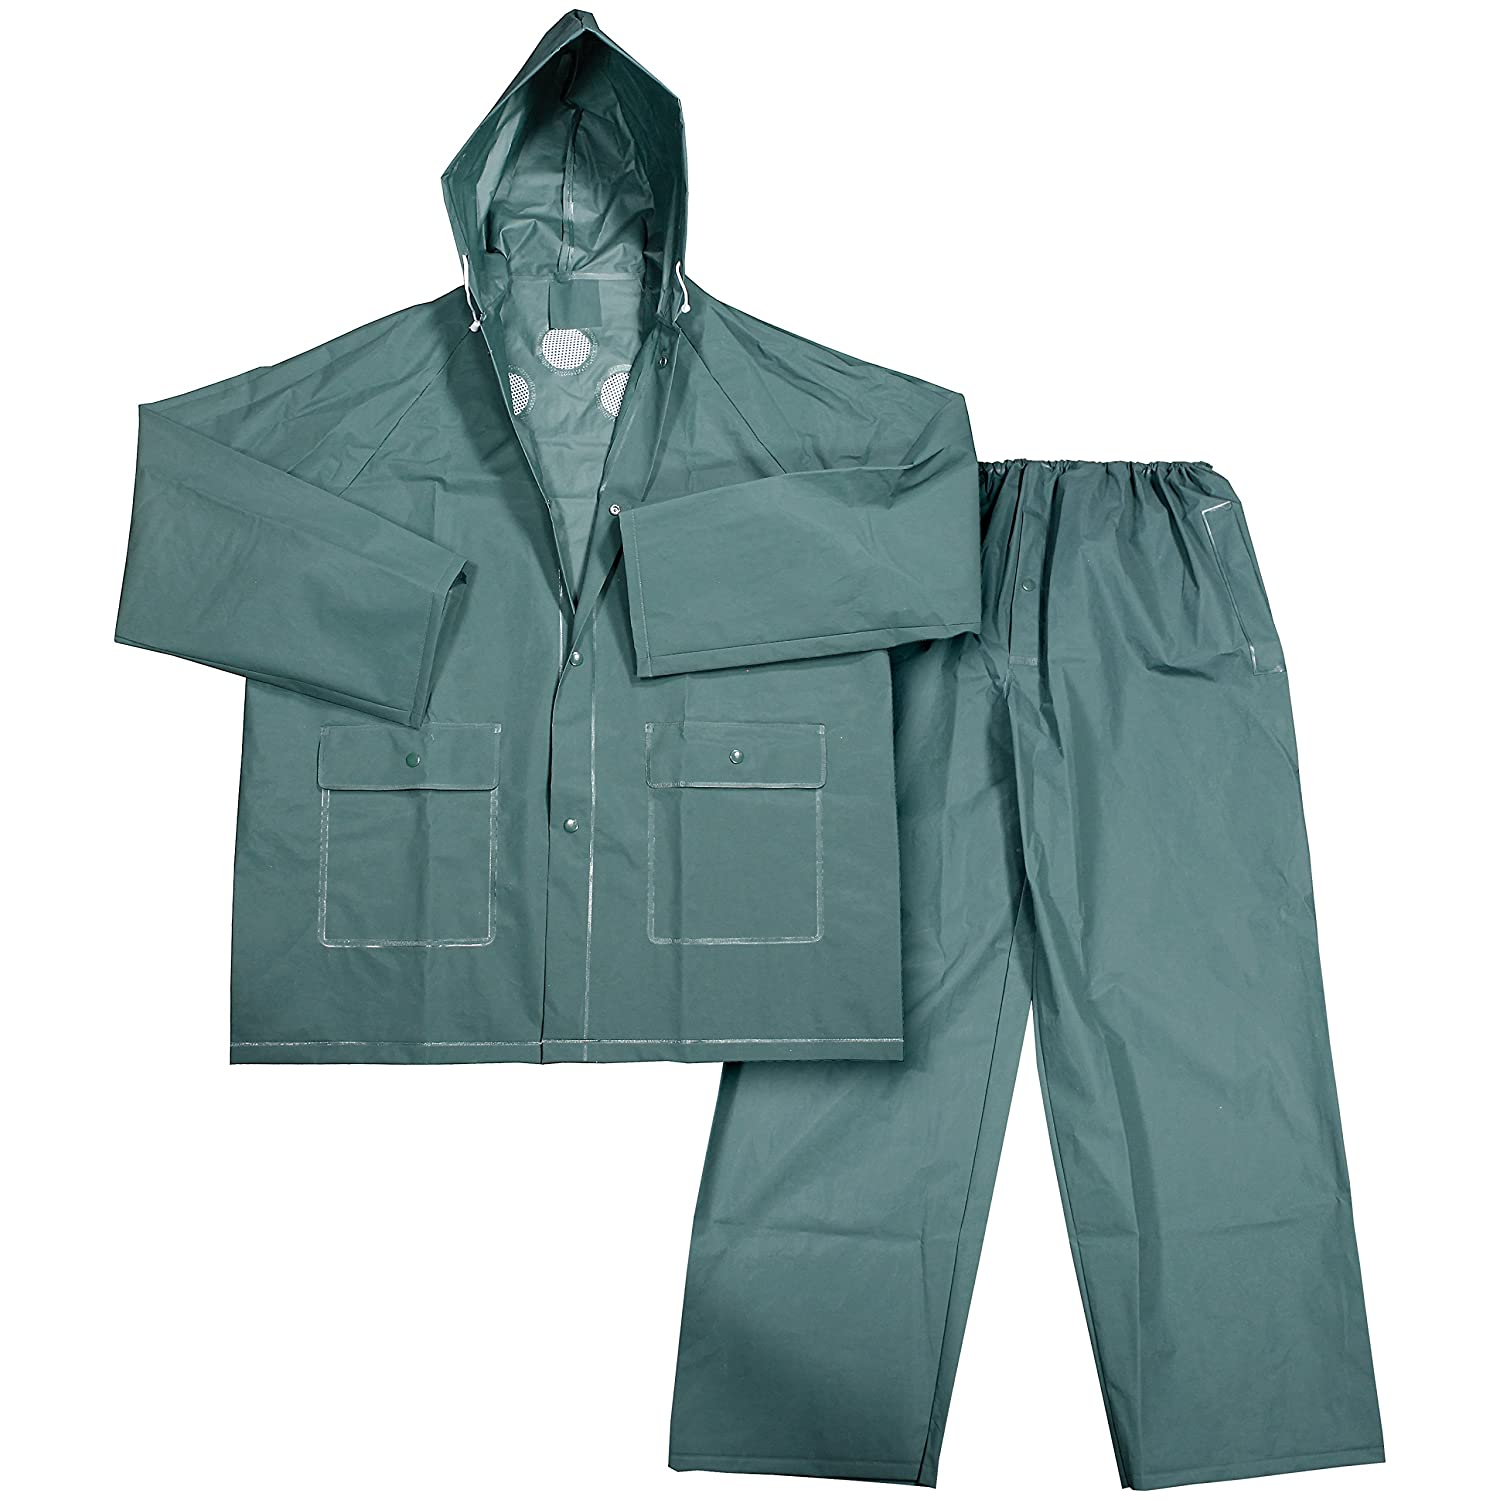 Black Galeton 11930-XXXL-BK 11930 Repel Rainwear 3 Piece Rain Suit 3X-Large 0.35 mm PVC